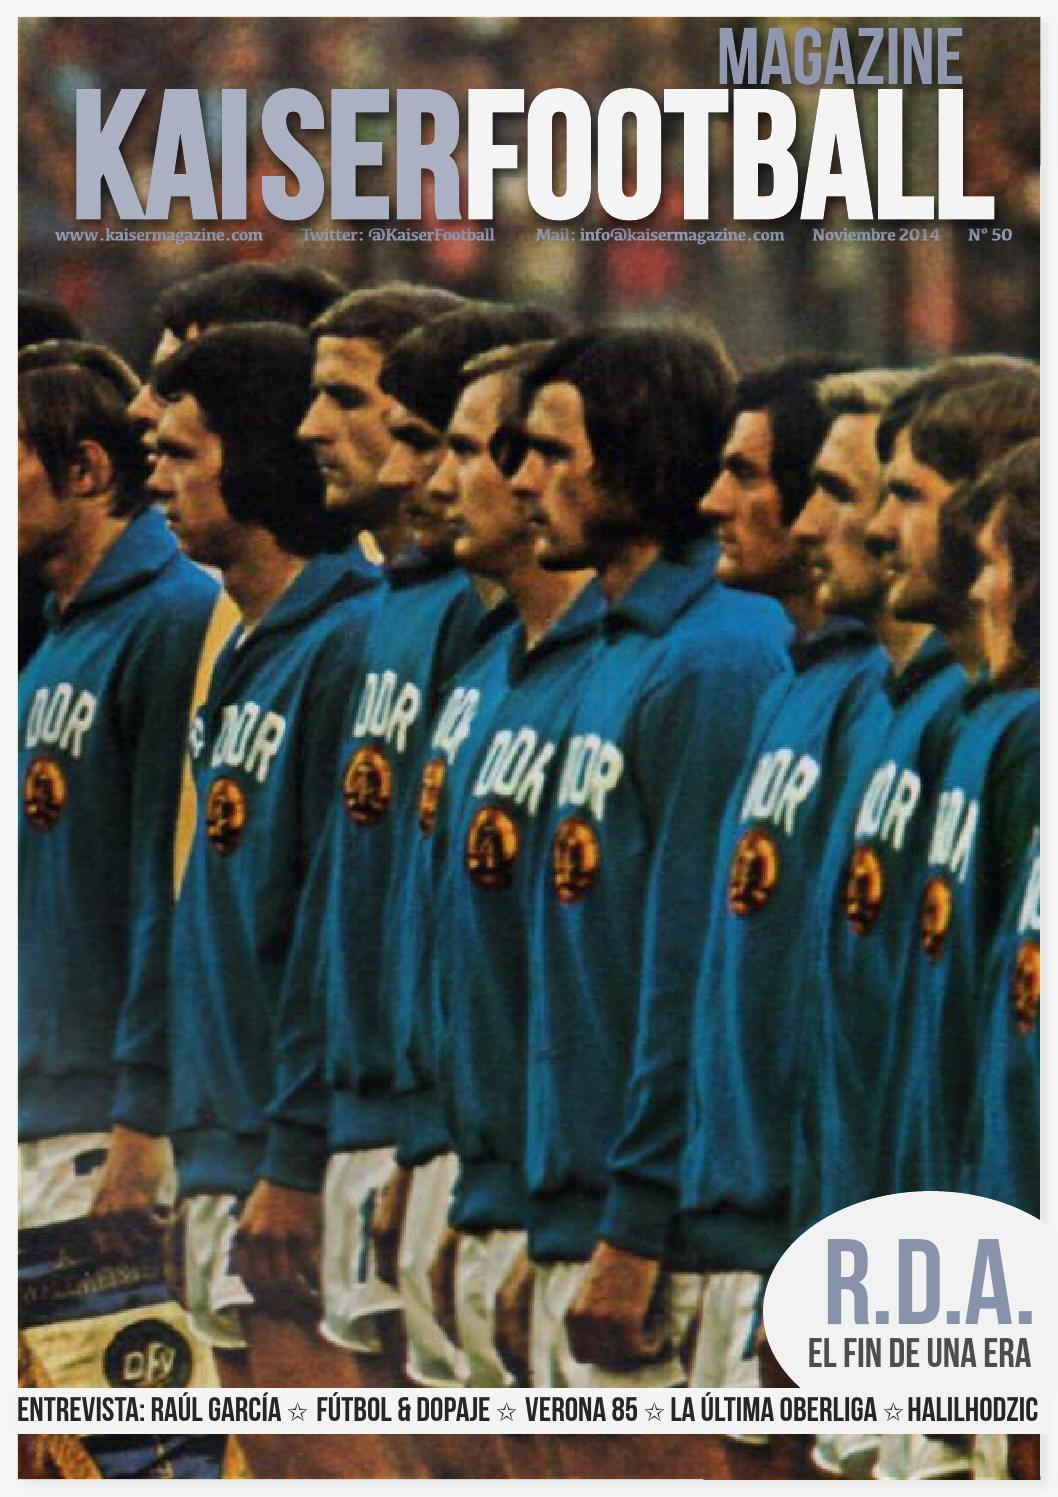 Revista Kaiser 50 | Noviembre 2014 by Kaiser Football - issuu